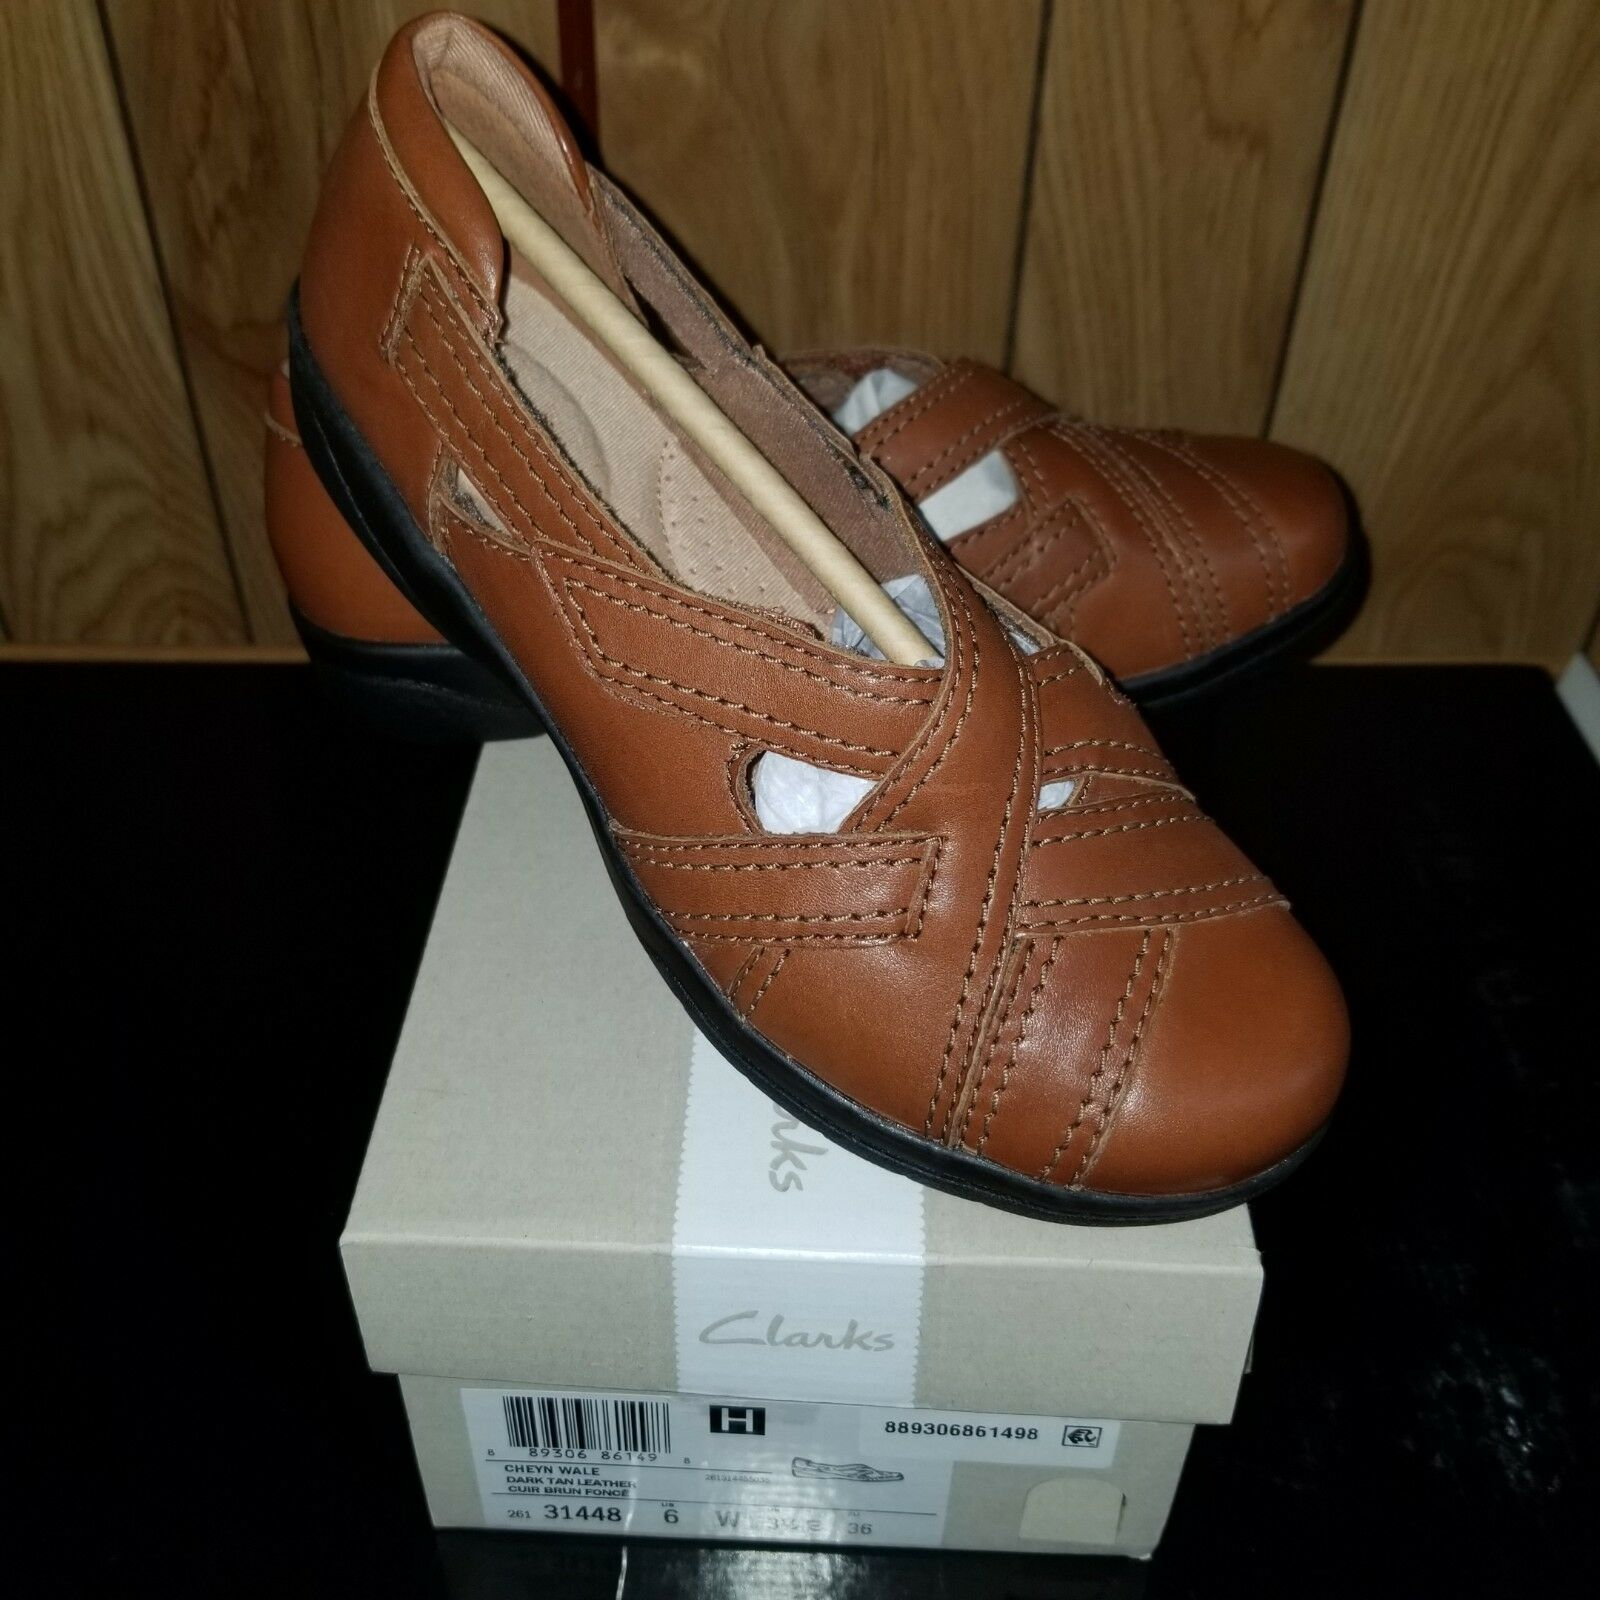 Clarks women's Leather Loafer slip slip slip on walking comfort size 6Wide 5138ef